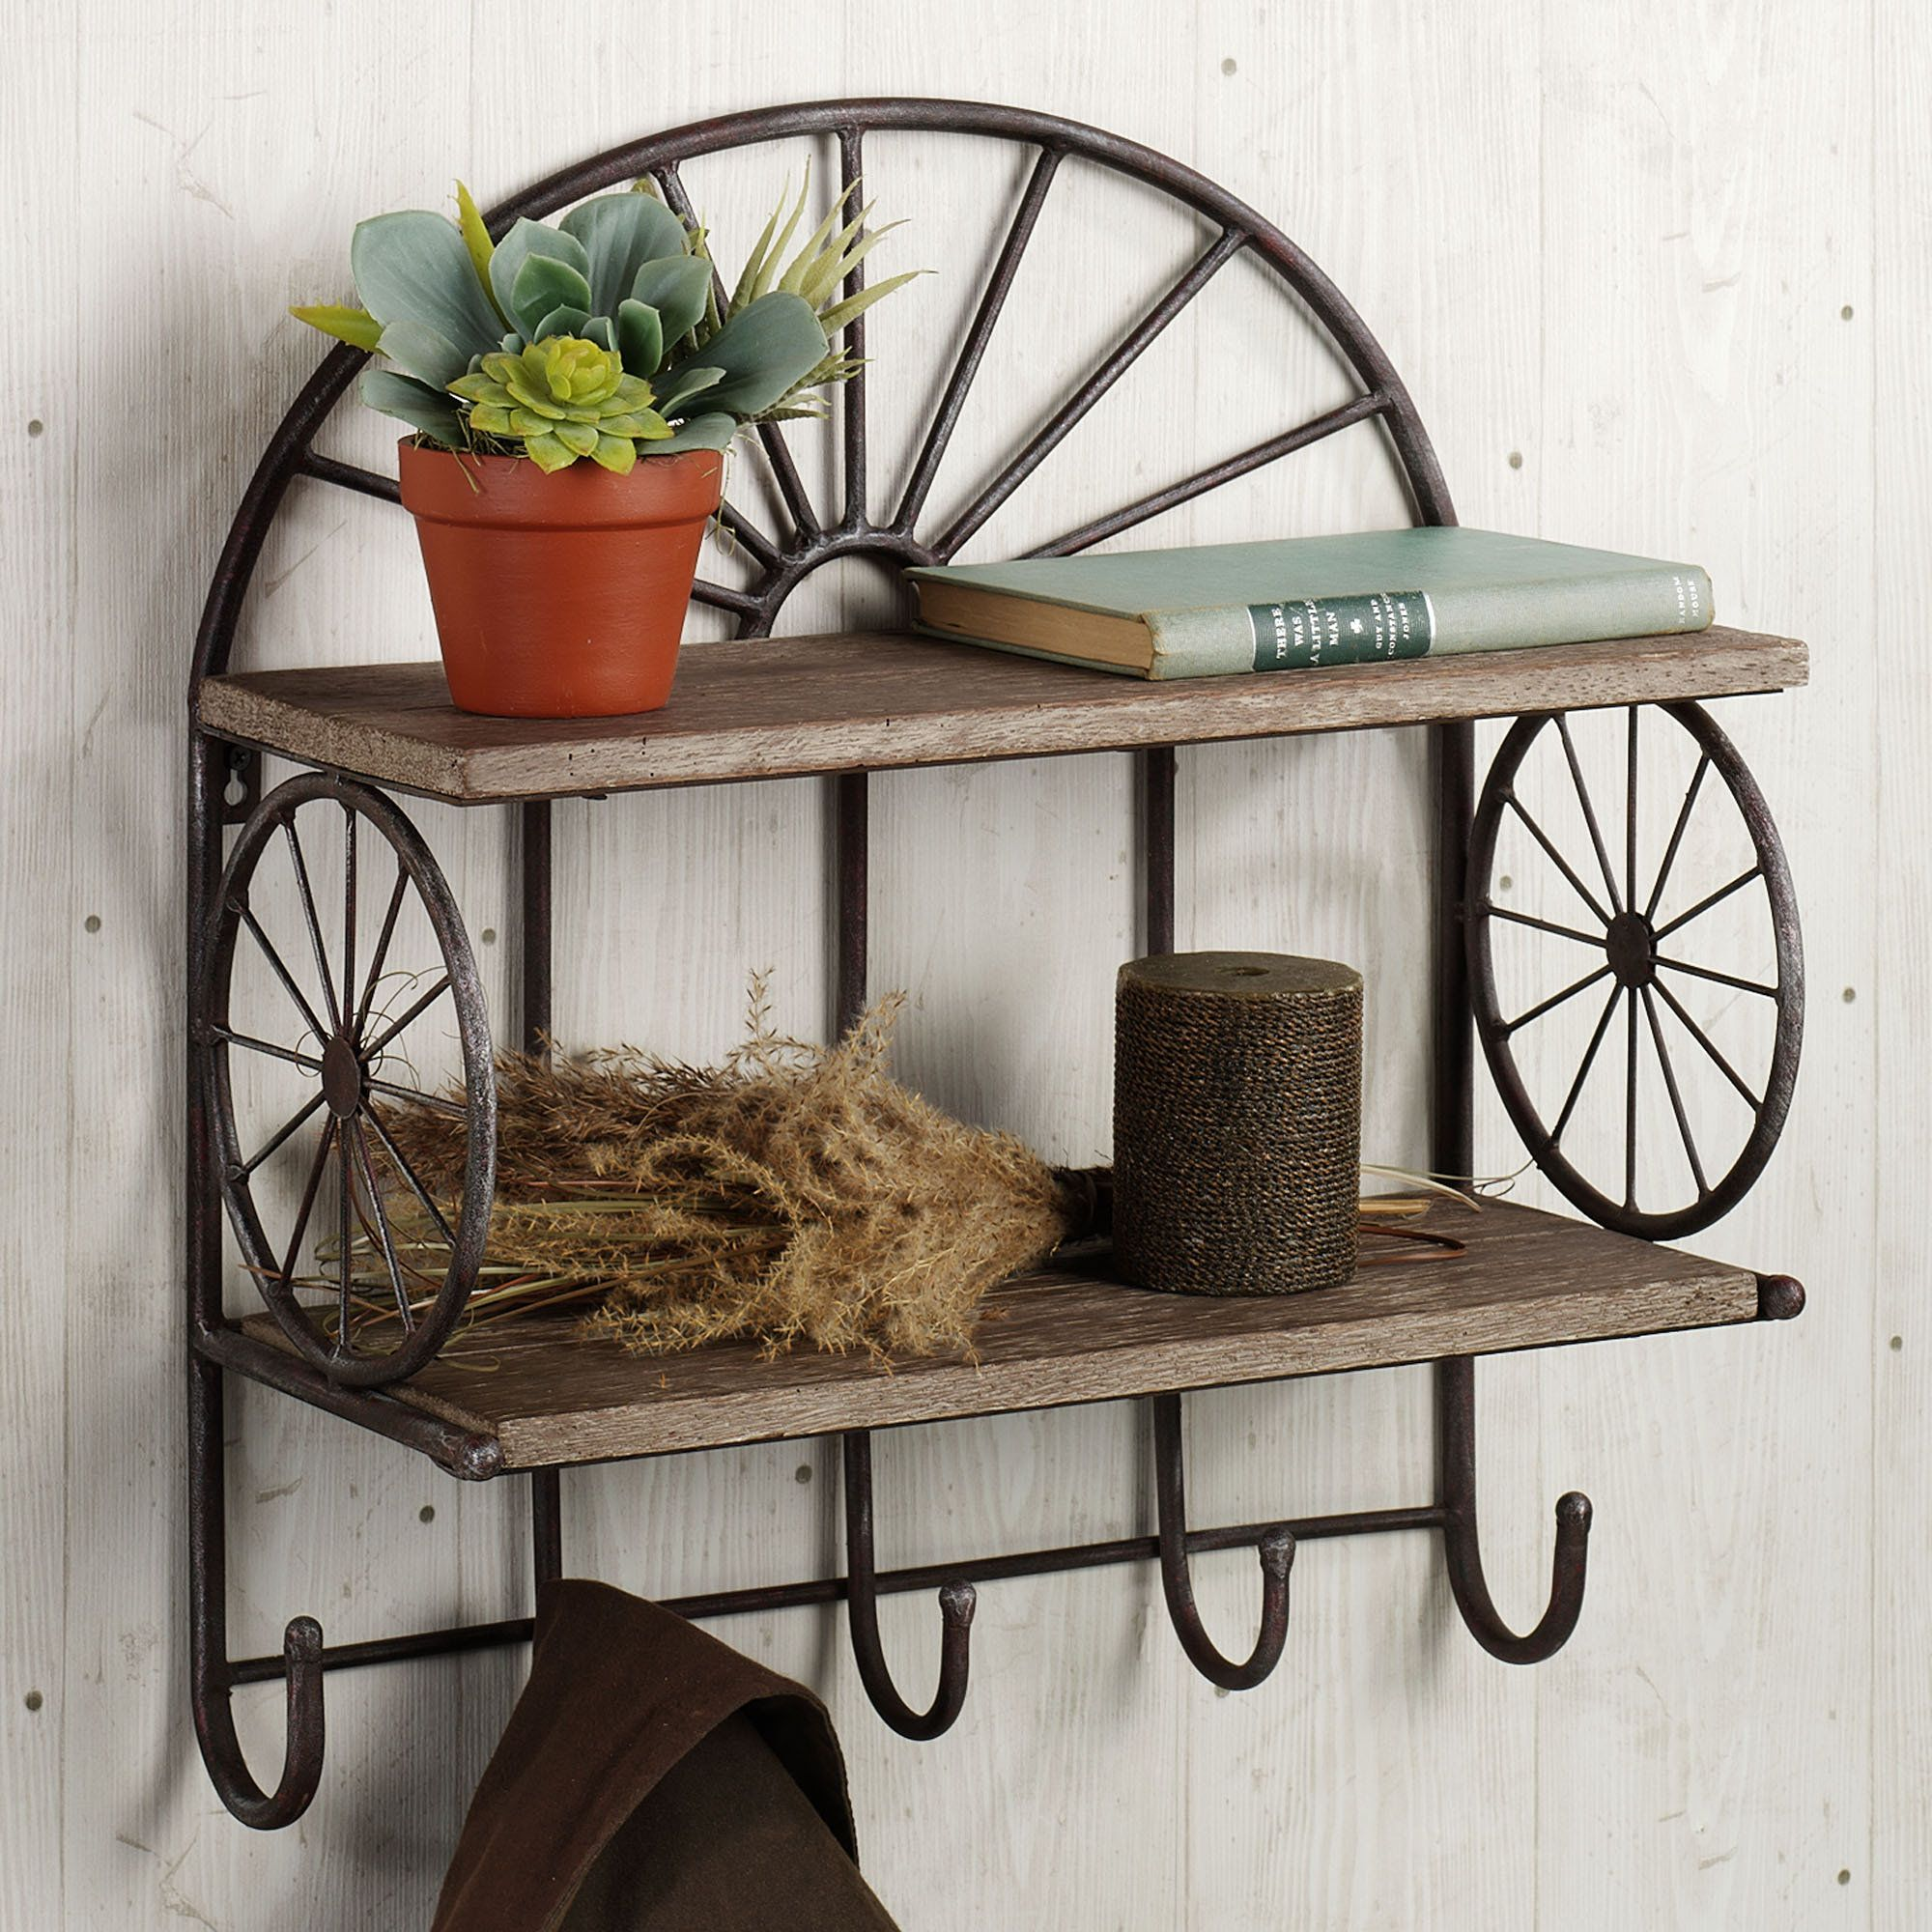 Rustic Style Dark Iron Floating Double Tier Wall Shelves